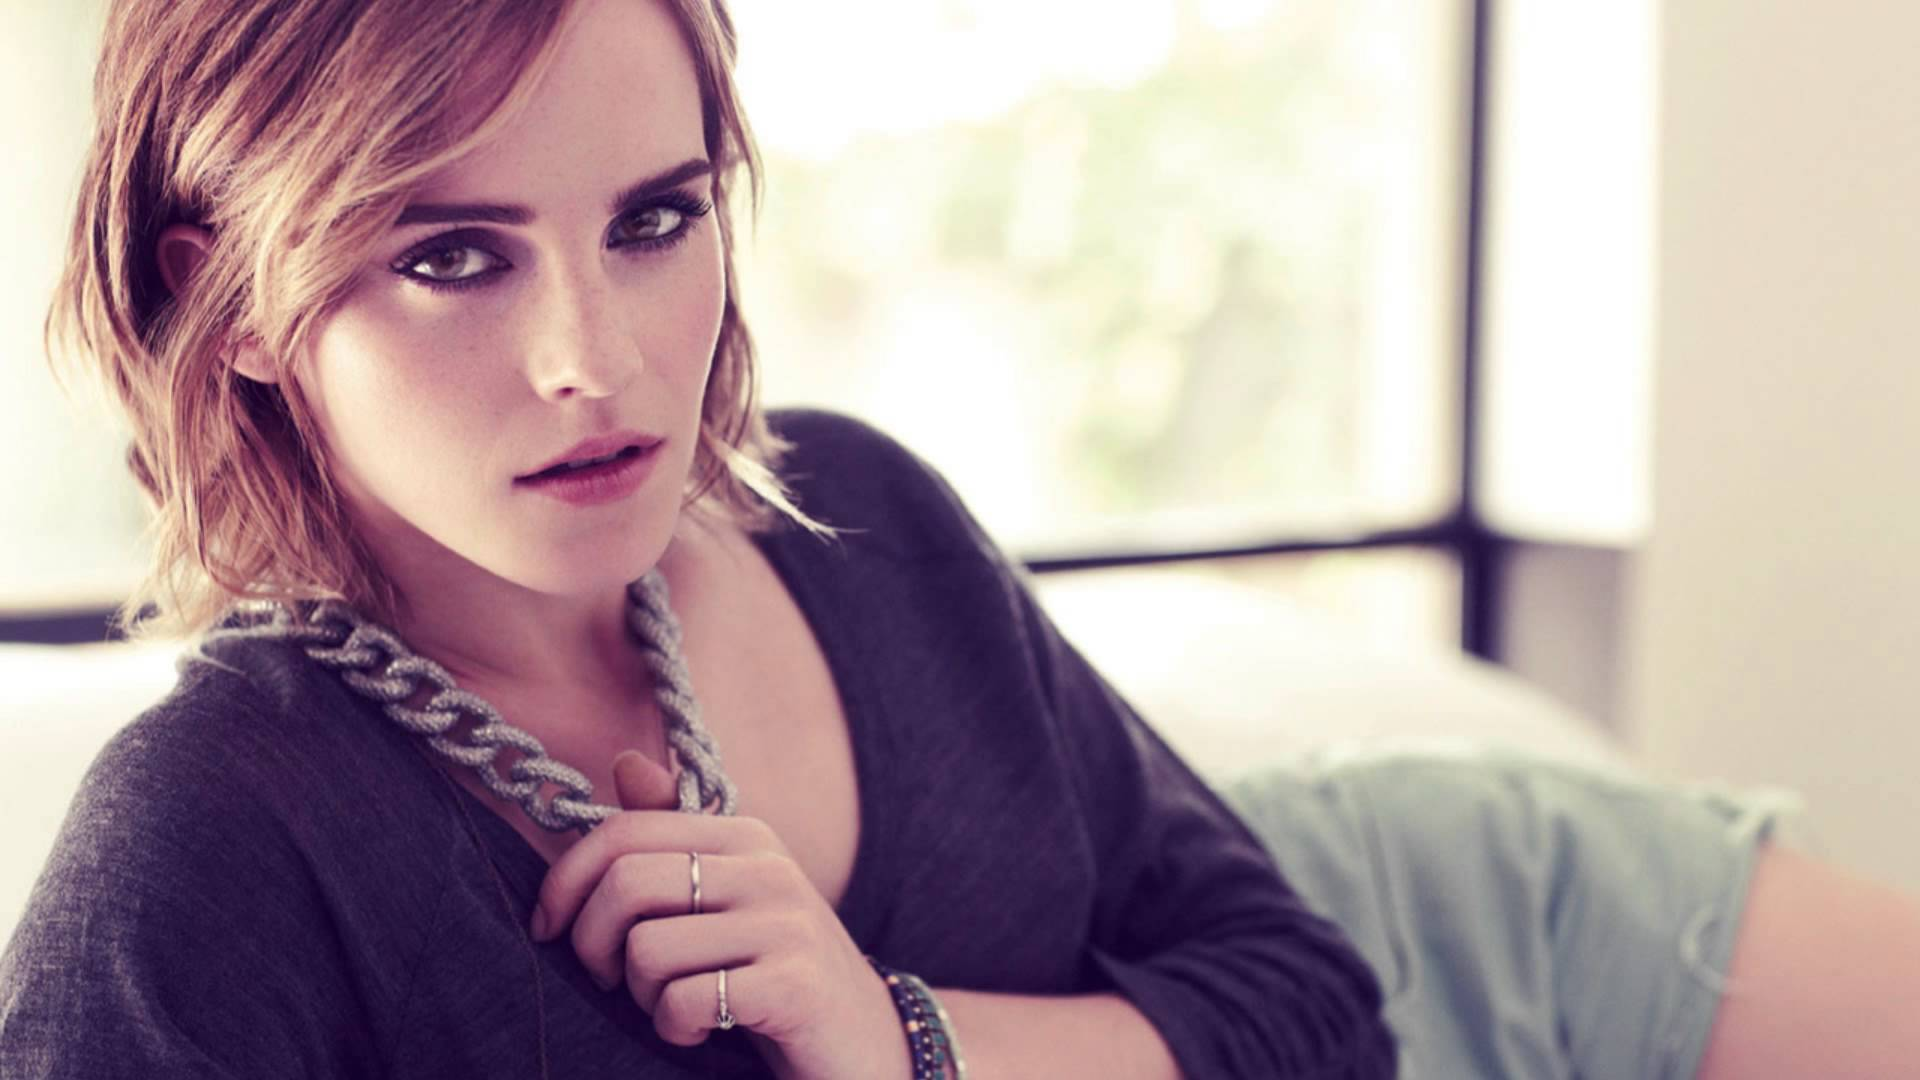 October 1 2015 By Stephen Comments Off on Emma Watson 2015 Wallpaper 1920x1080